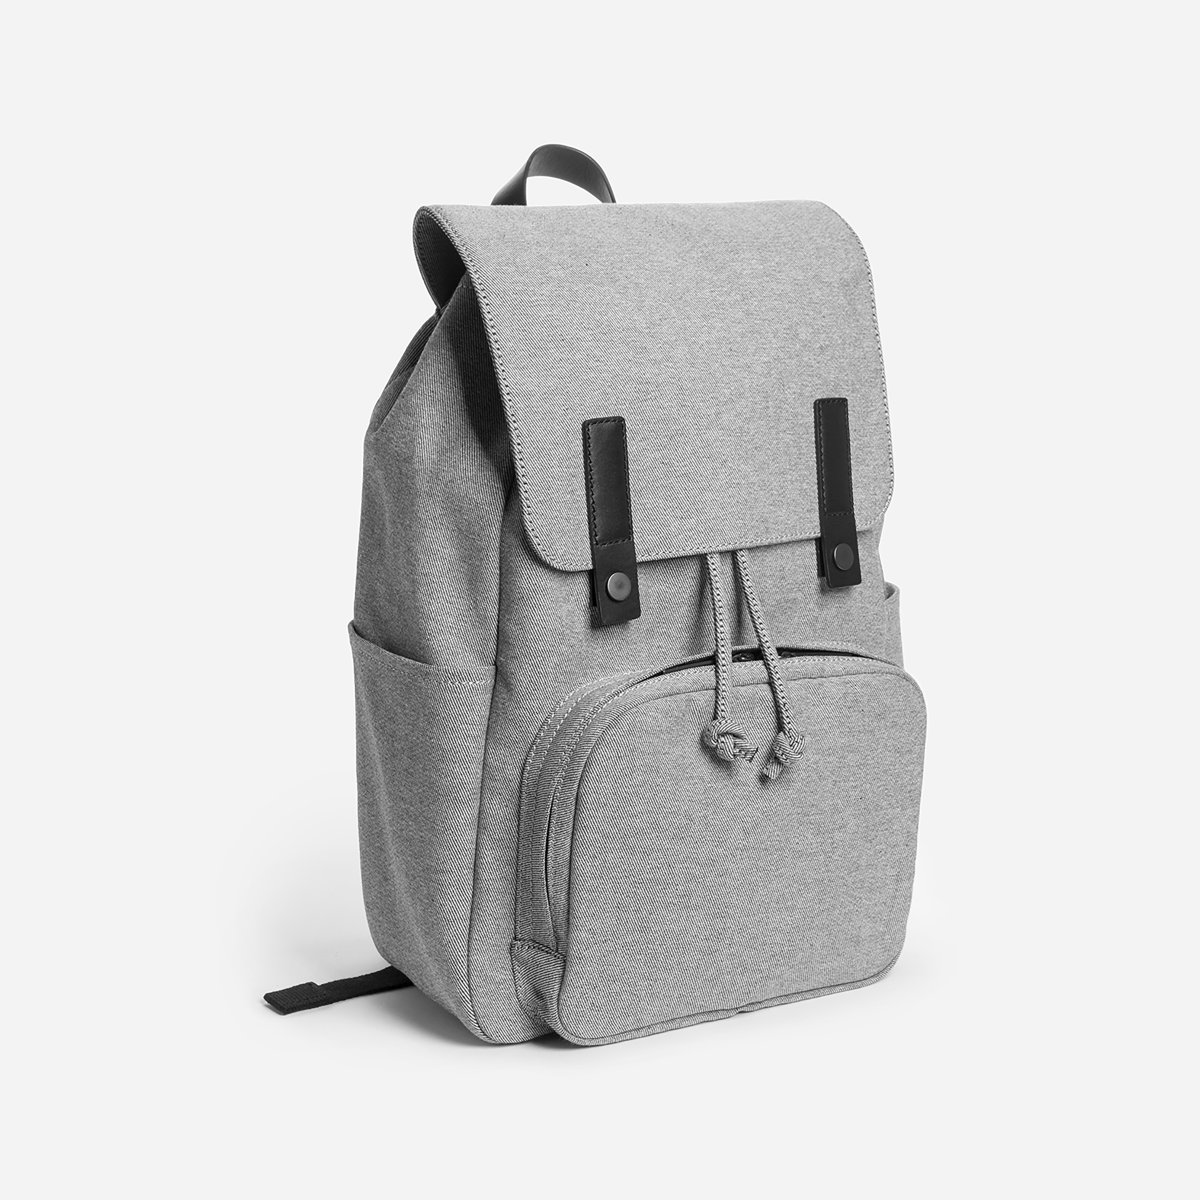 7c36f793bb2 The Modern Snap Backpack